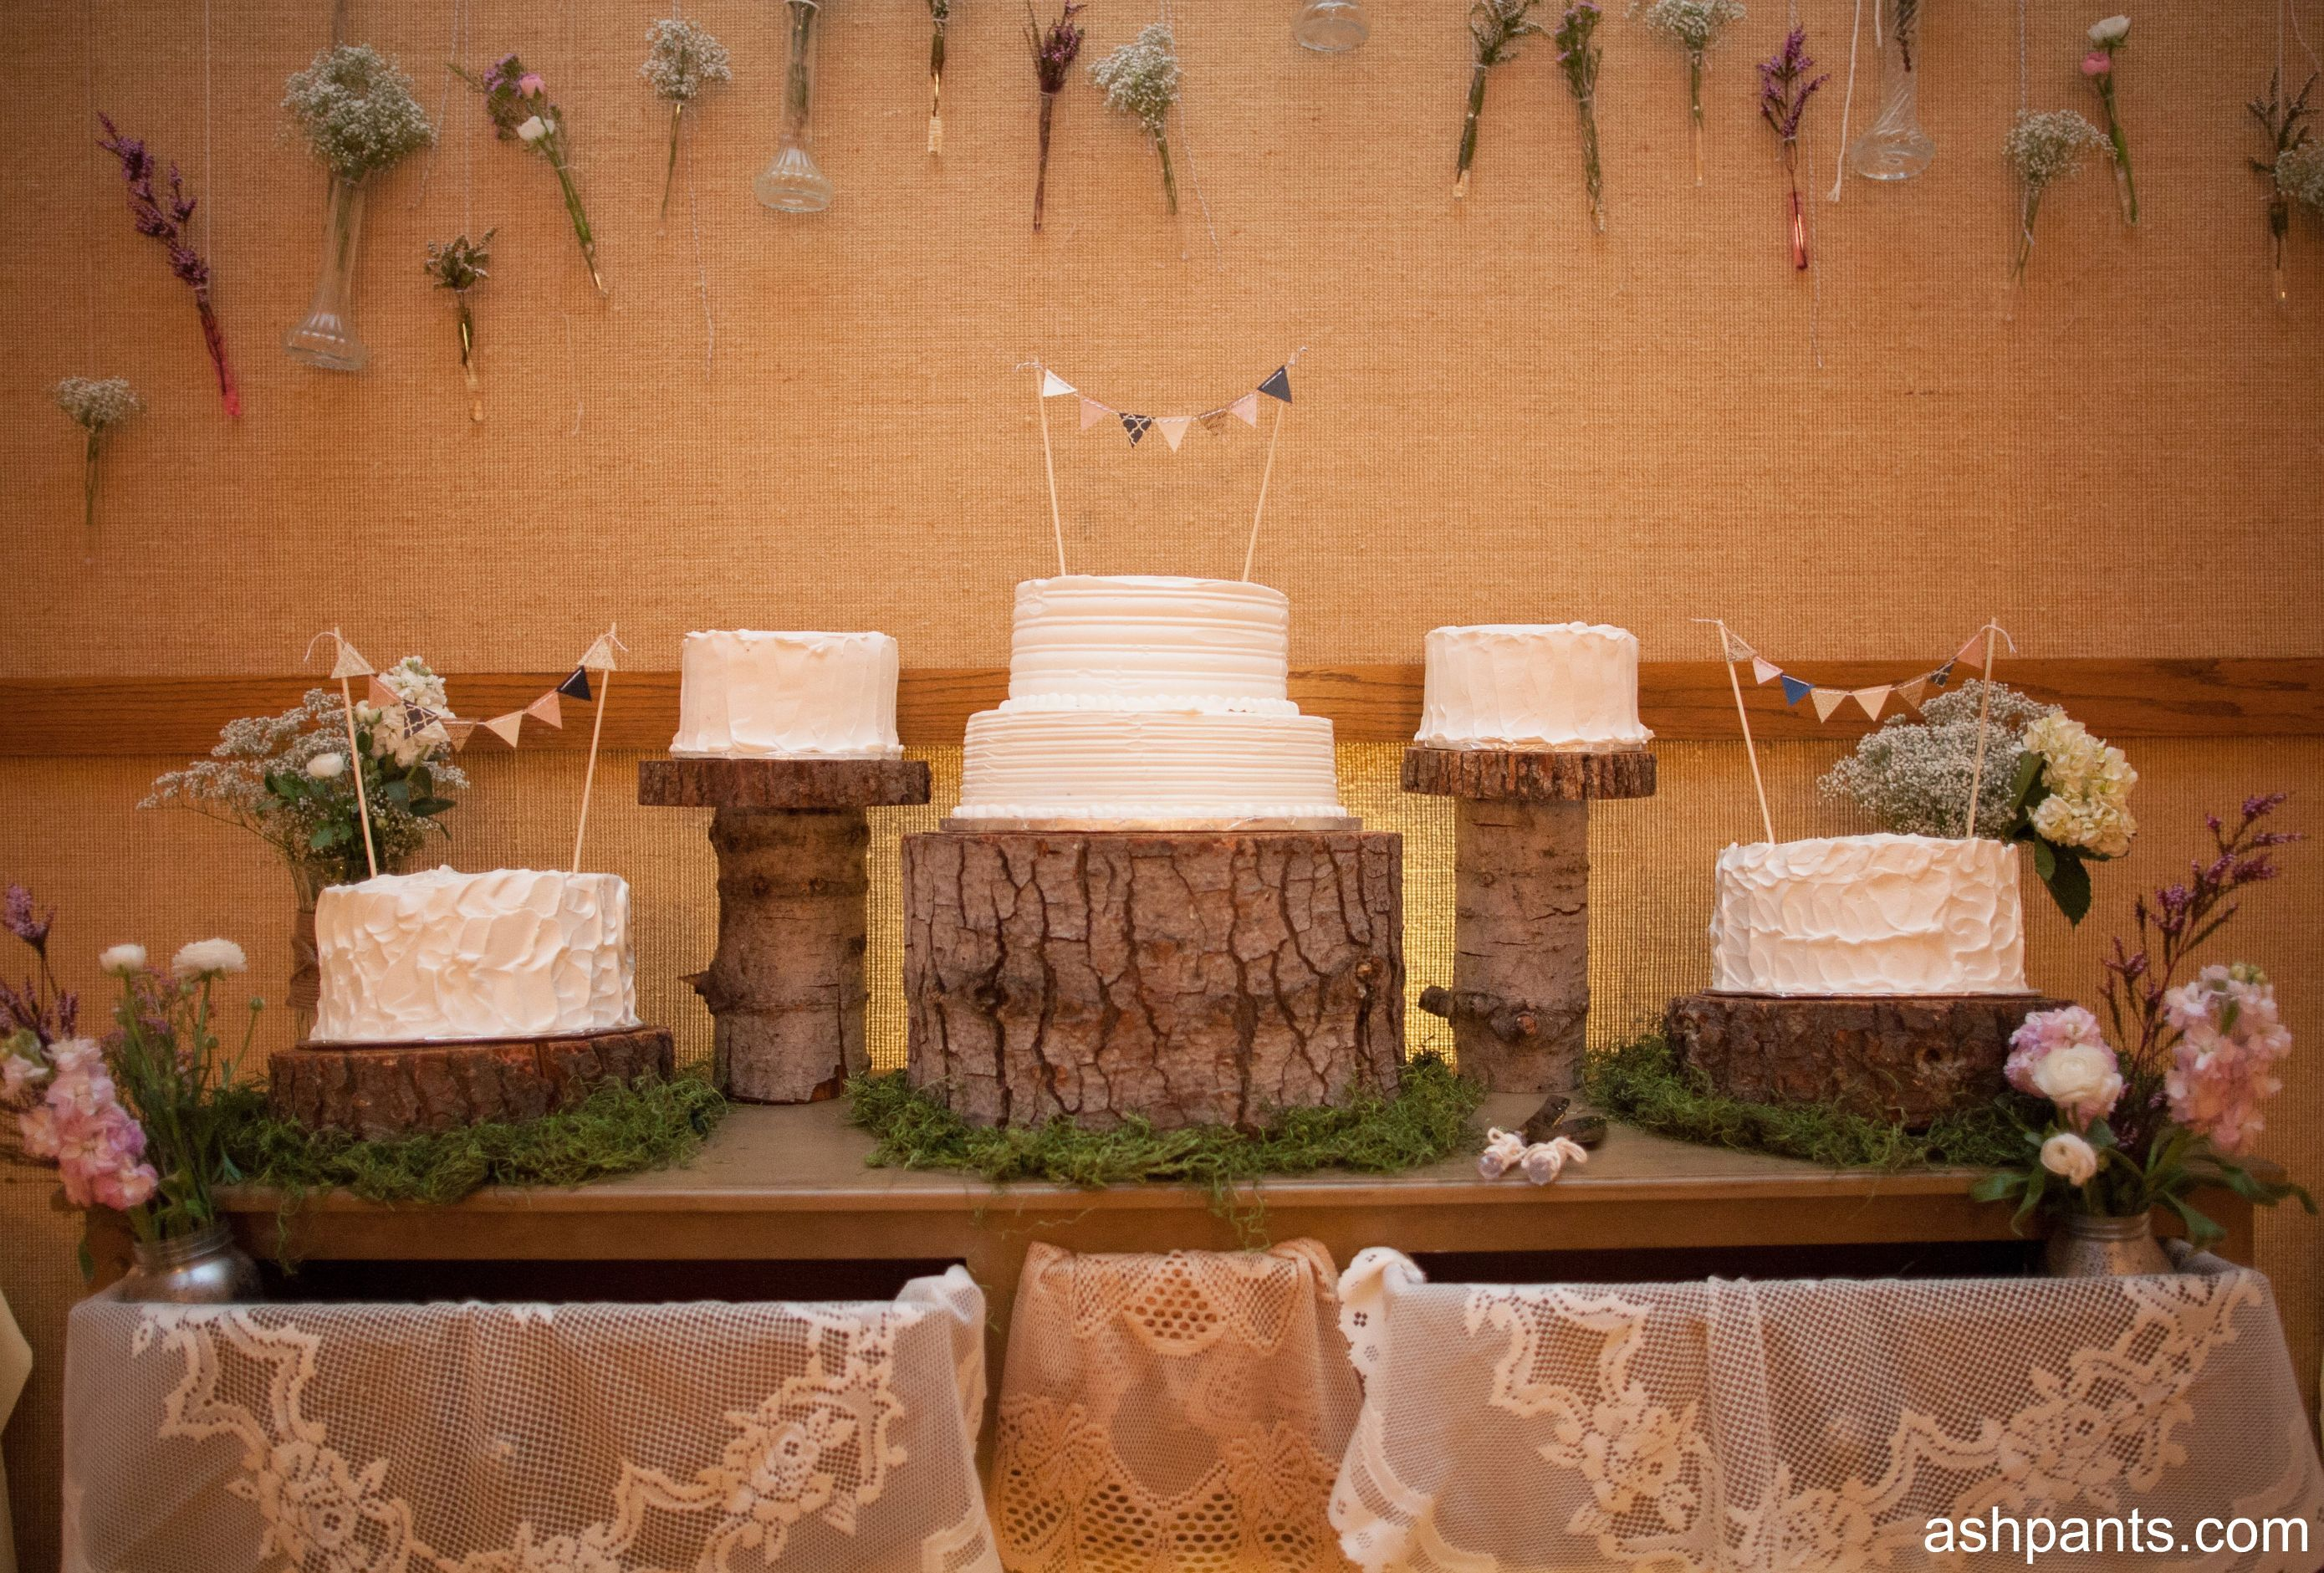 Ashpants white wedding cake with flag toppers and rustic wood cake